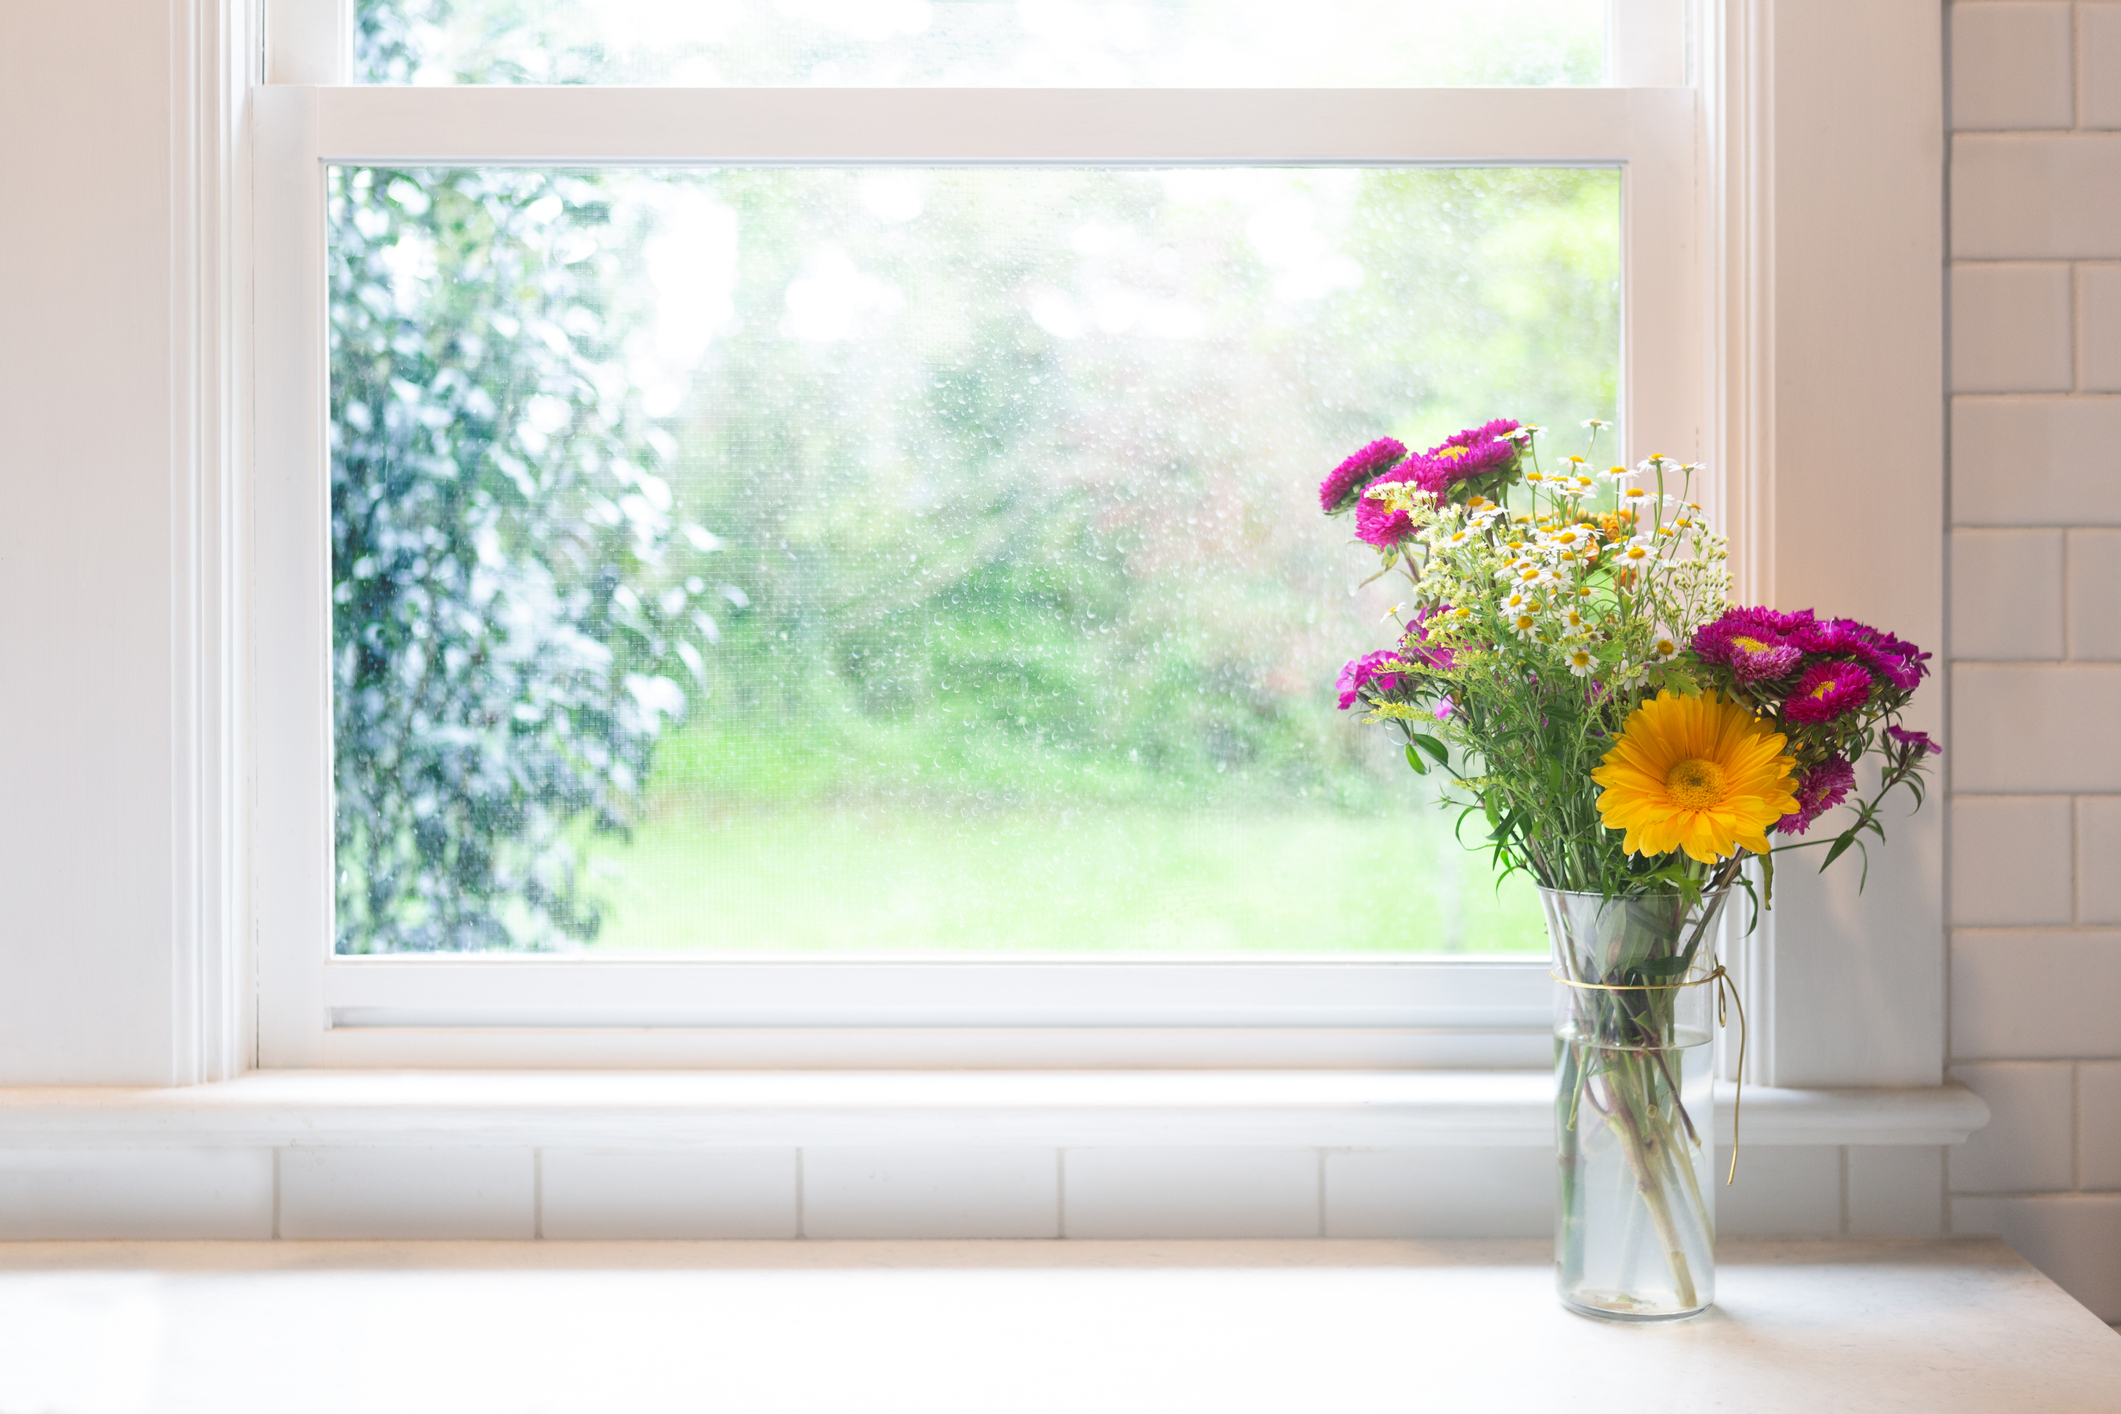 Is Poulsbo WA a Nice Place to Live? Image of a boquet of flowers sitting in front of a window on a summer day.